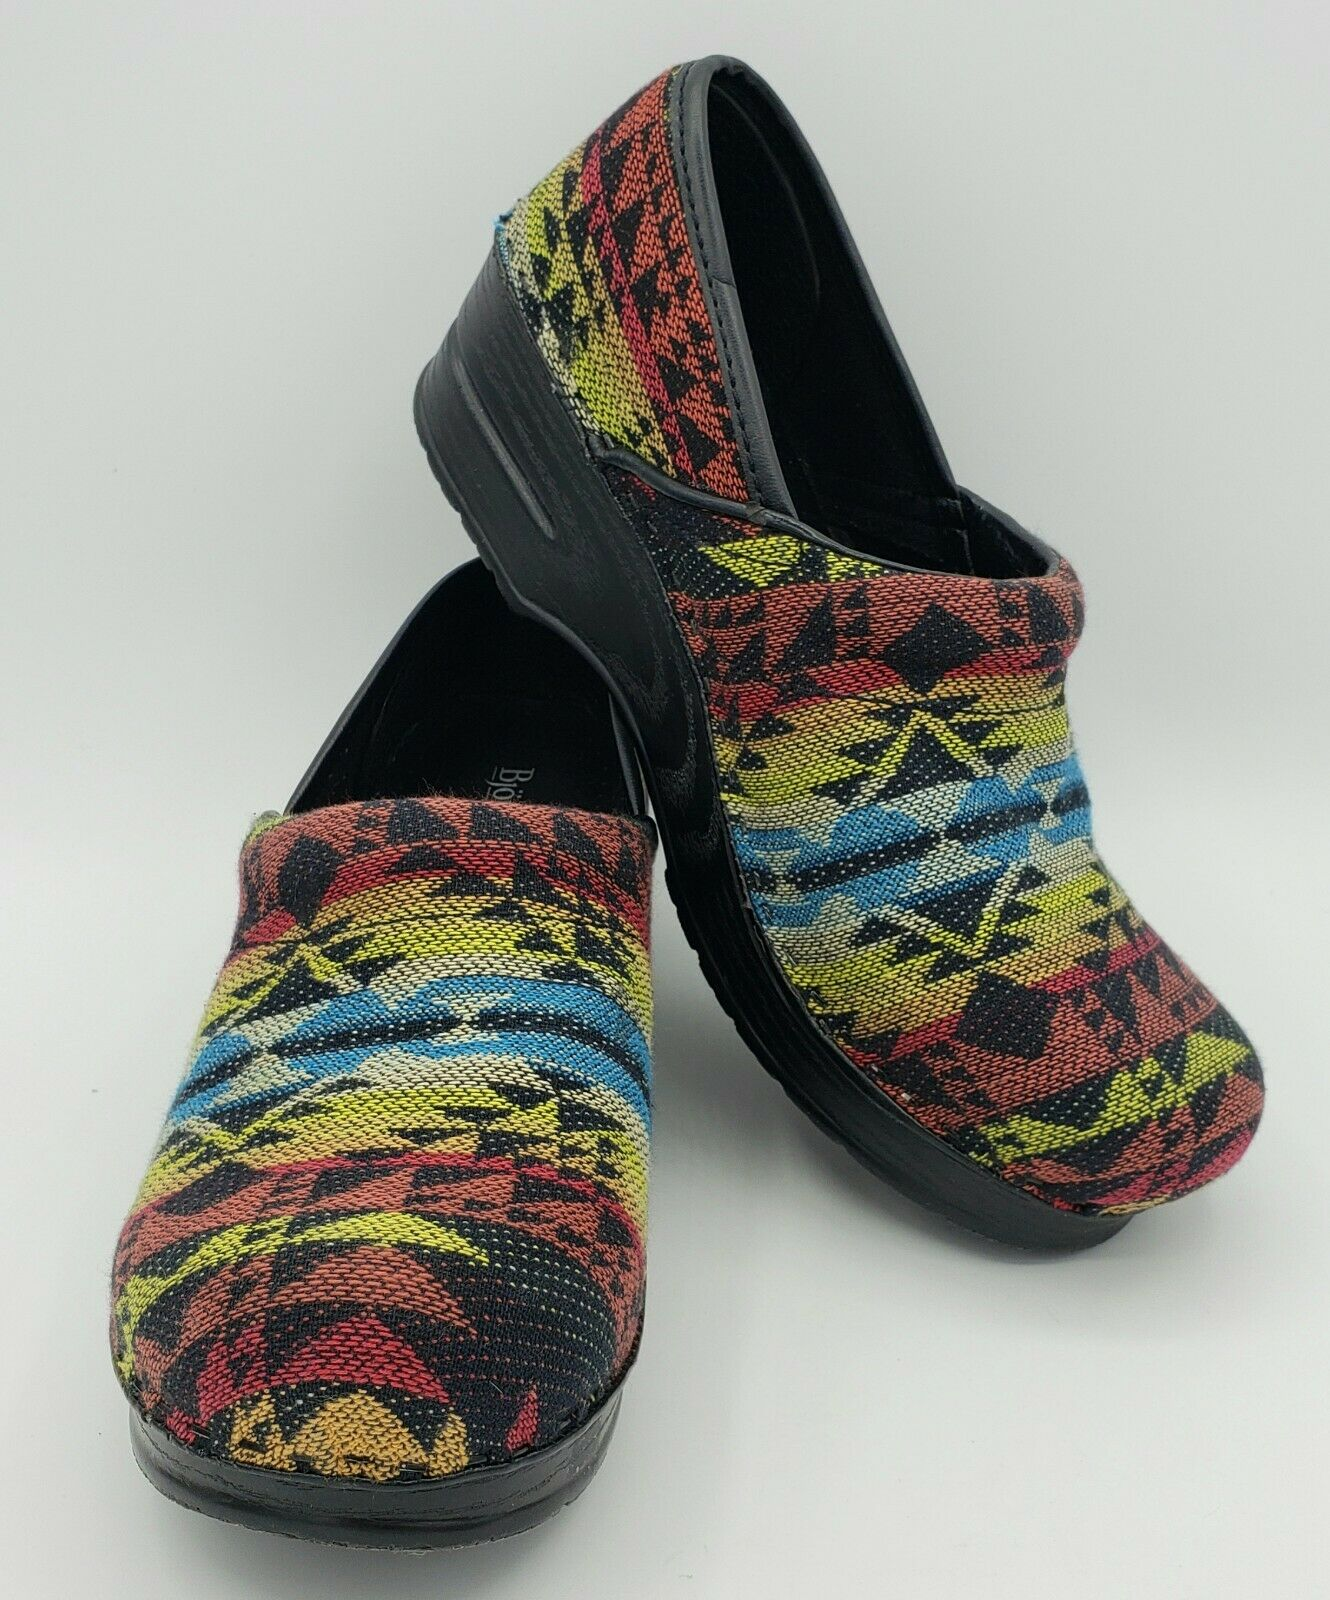 BJORNDAL Clogs Fabric Tapestry Mule Clogs